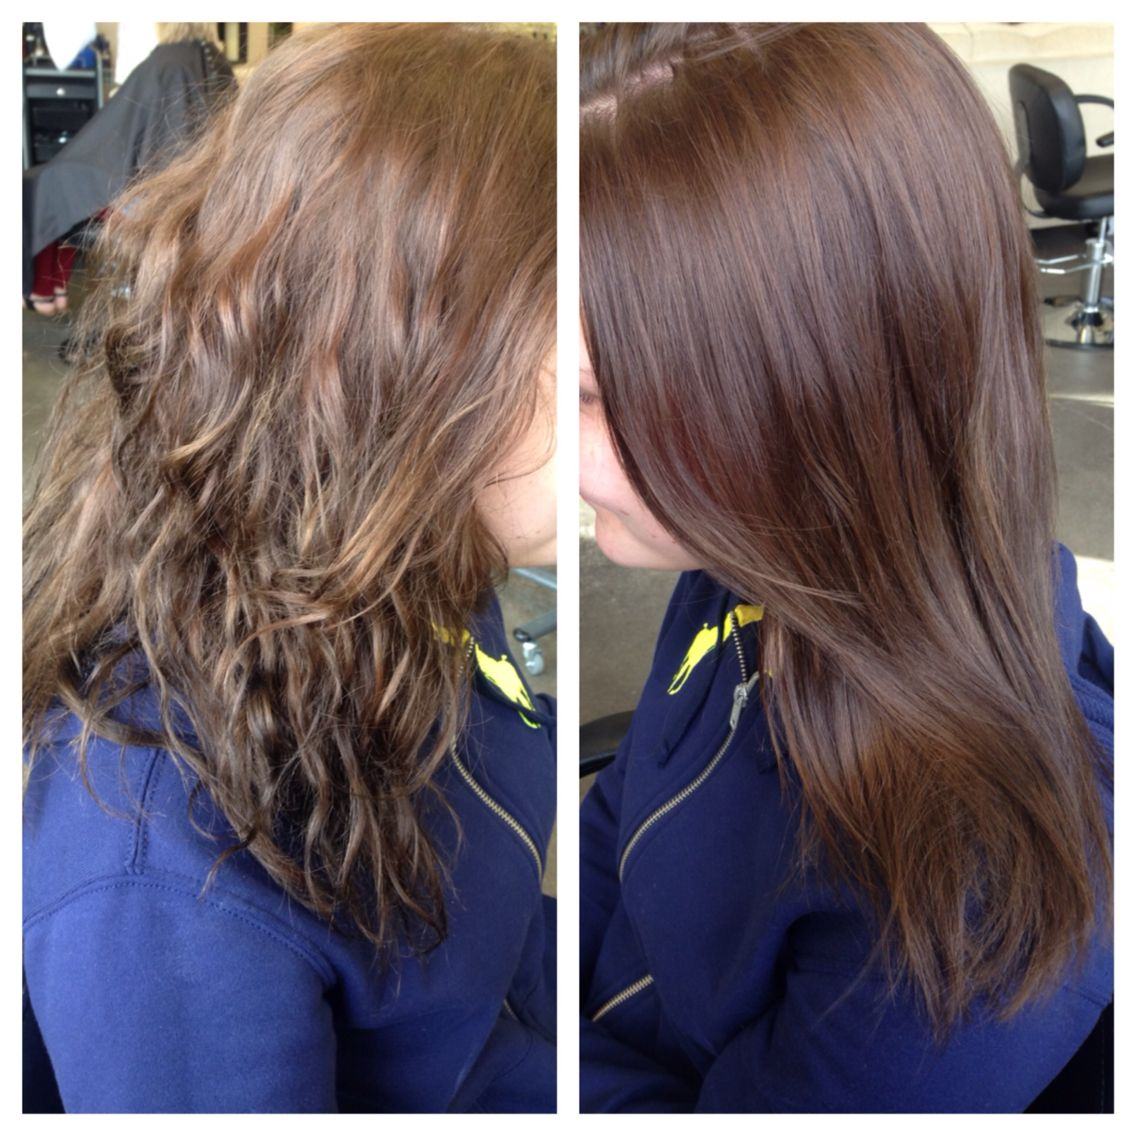 Brazilian Blowout before and after is just blown dry! No